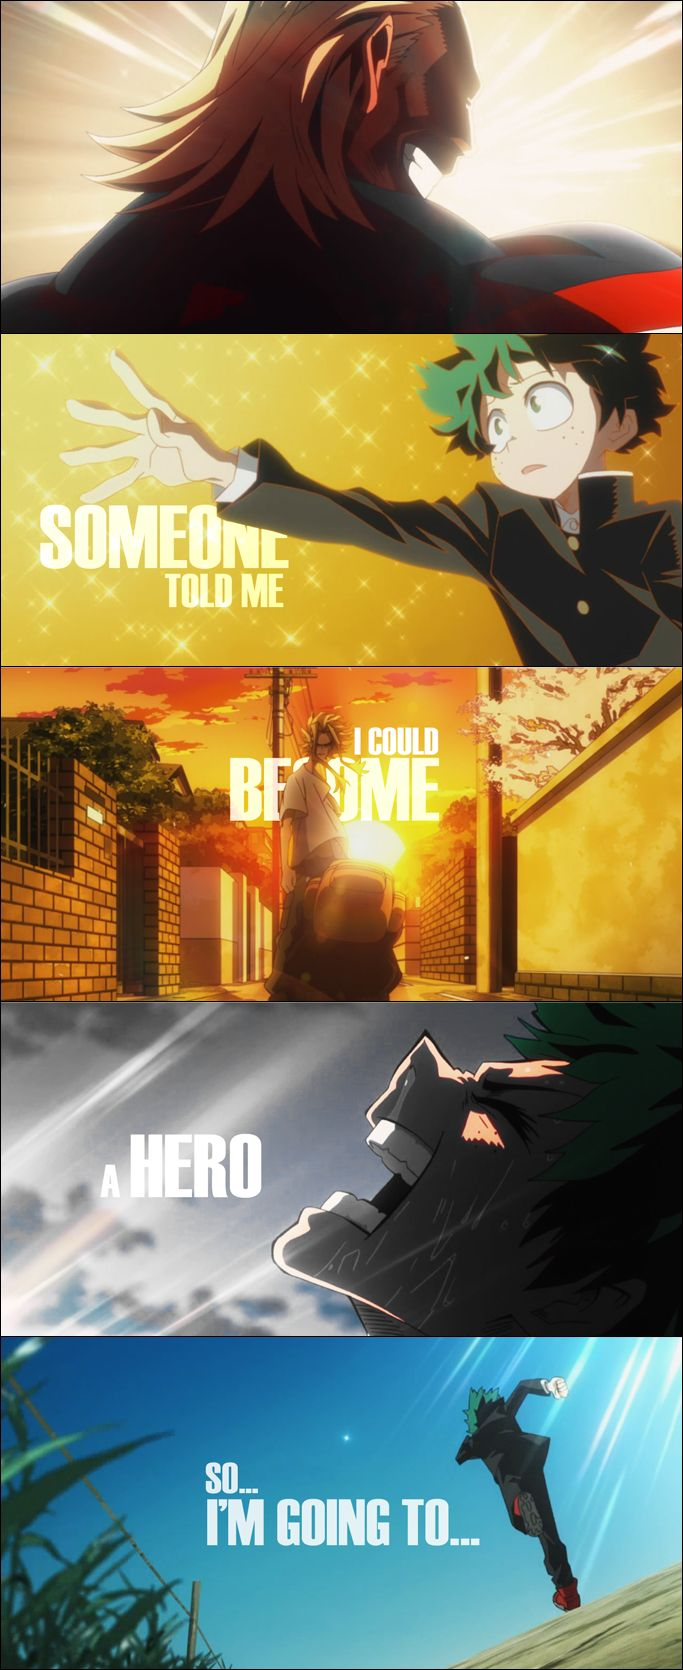 """Someone told me I could become a hero... so... I'm going to..."" 